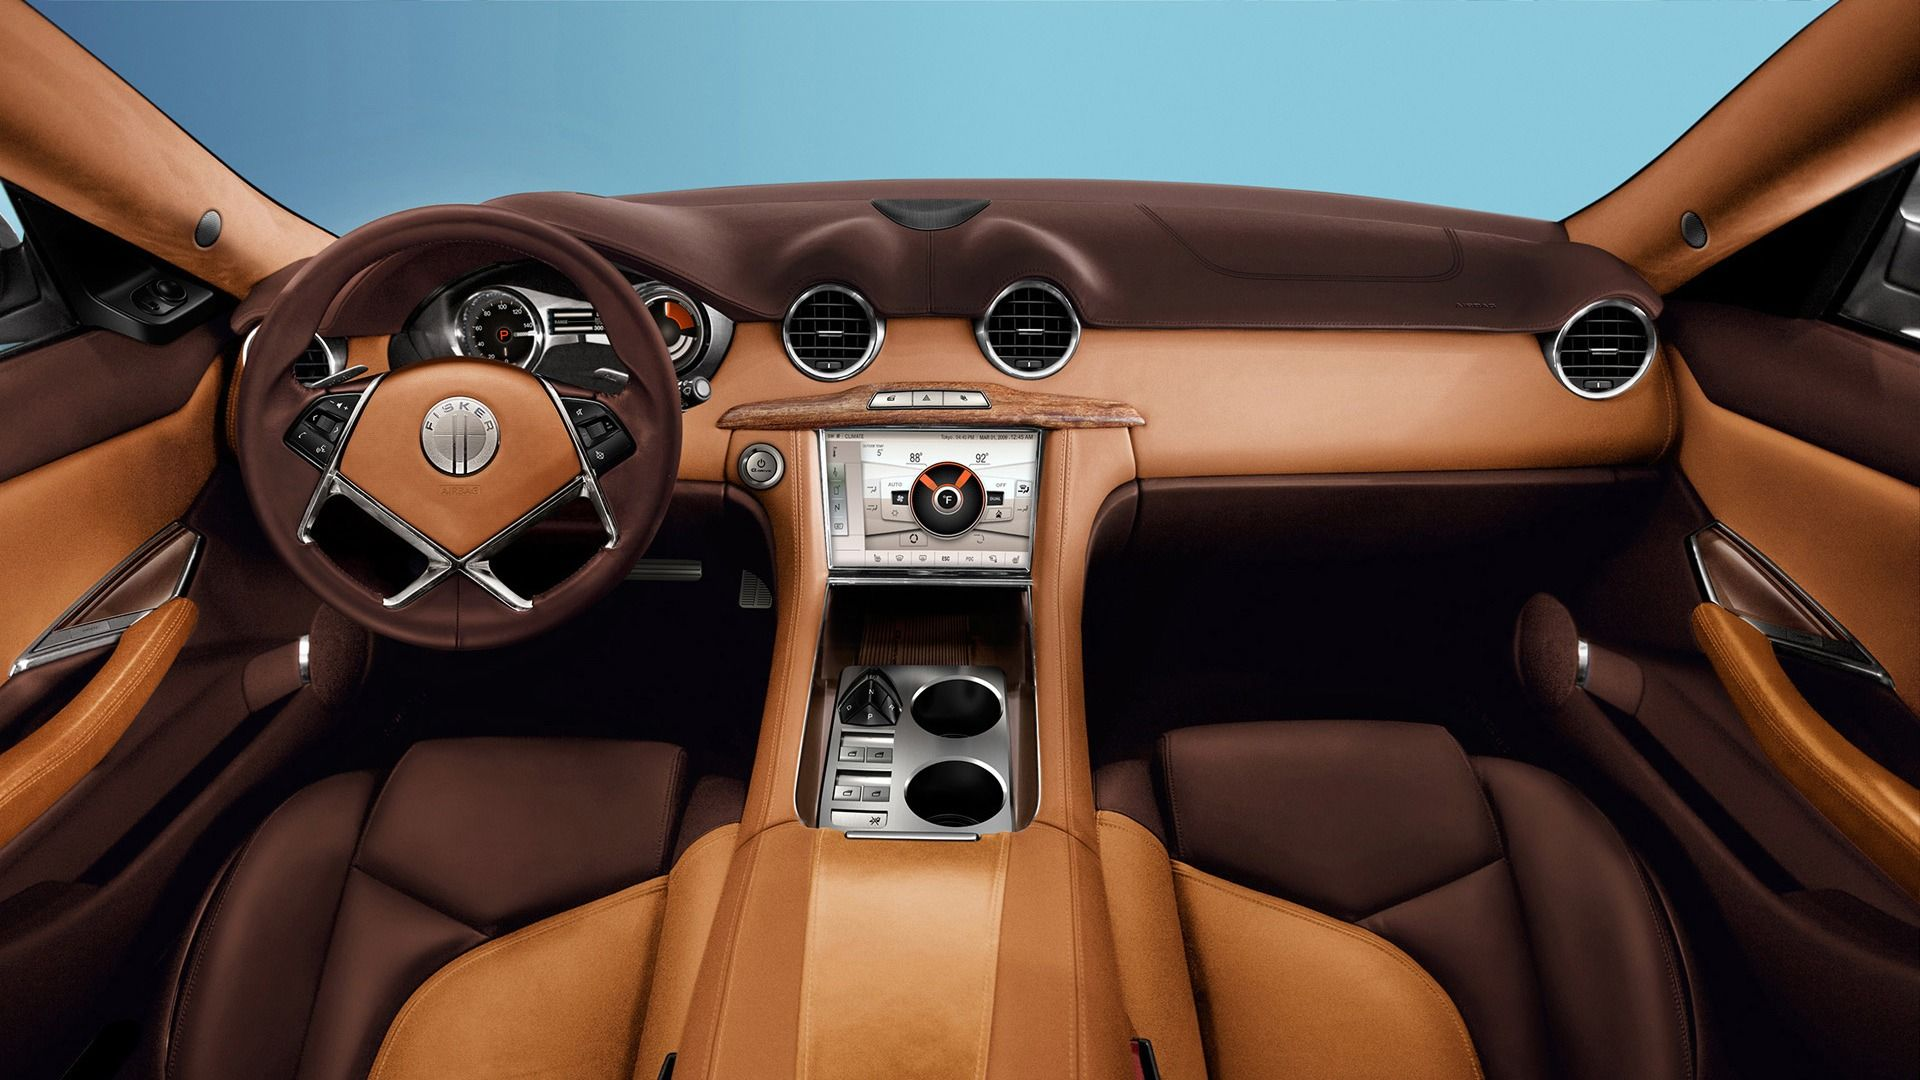 Fisker Car Interior Wallpaper 4792 1920x1080 - uMad.com